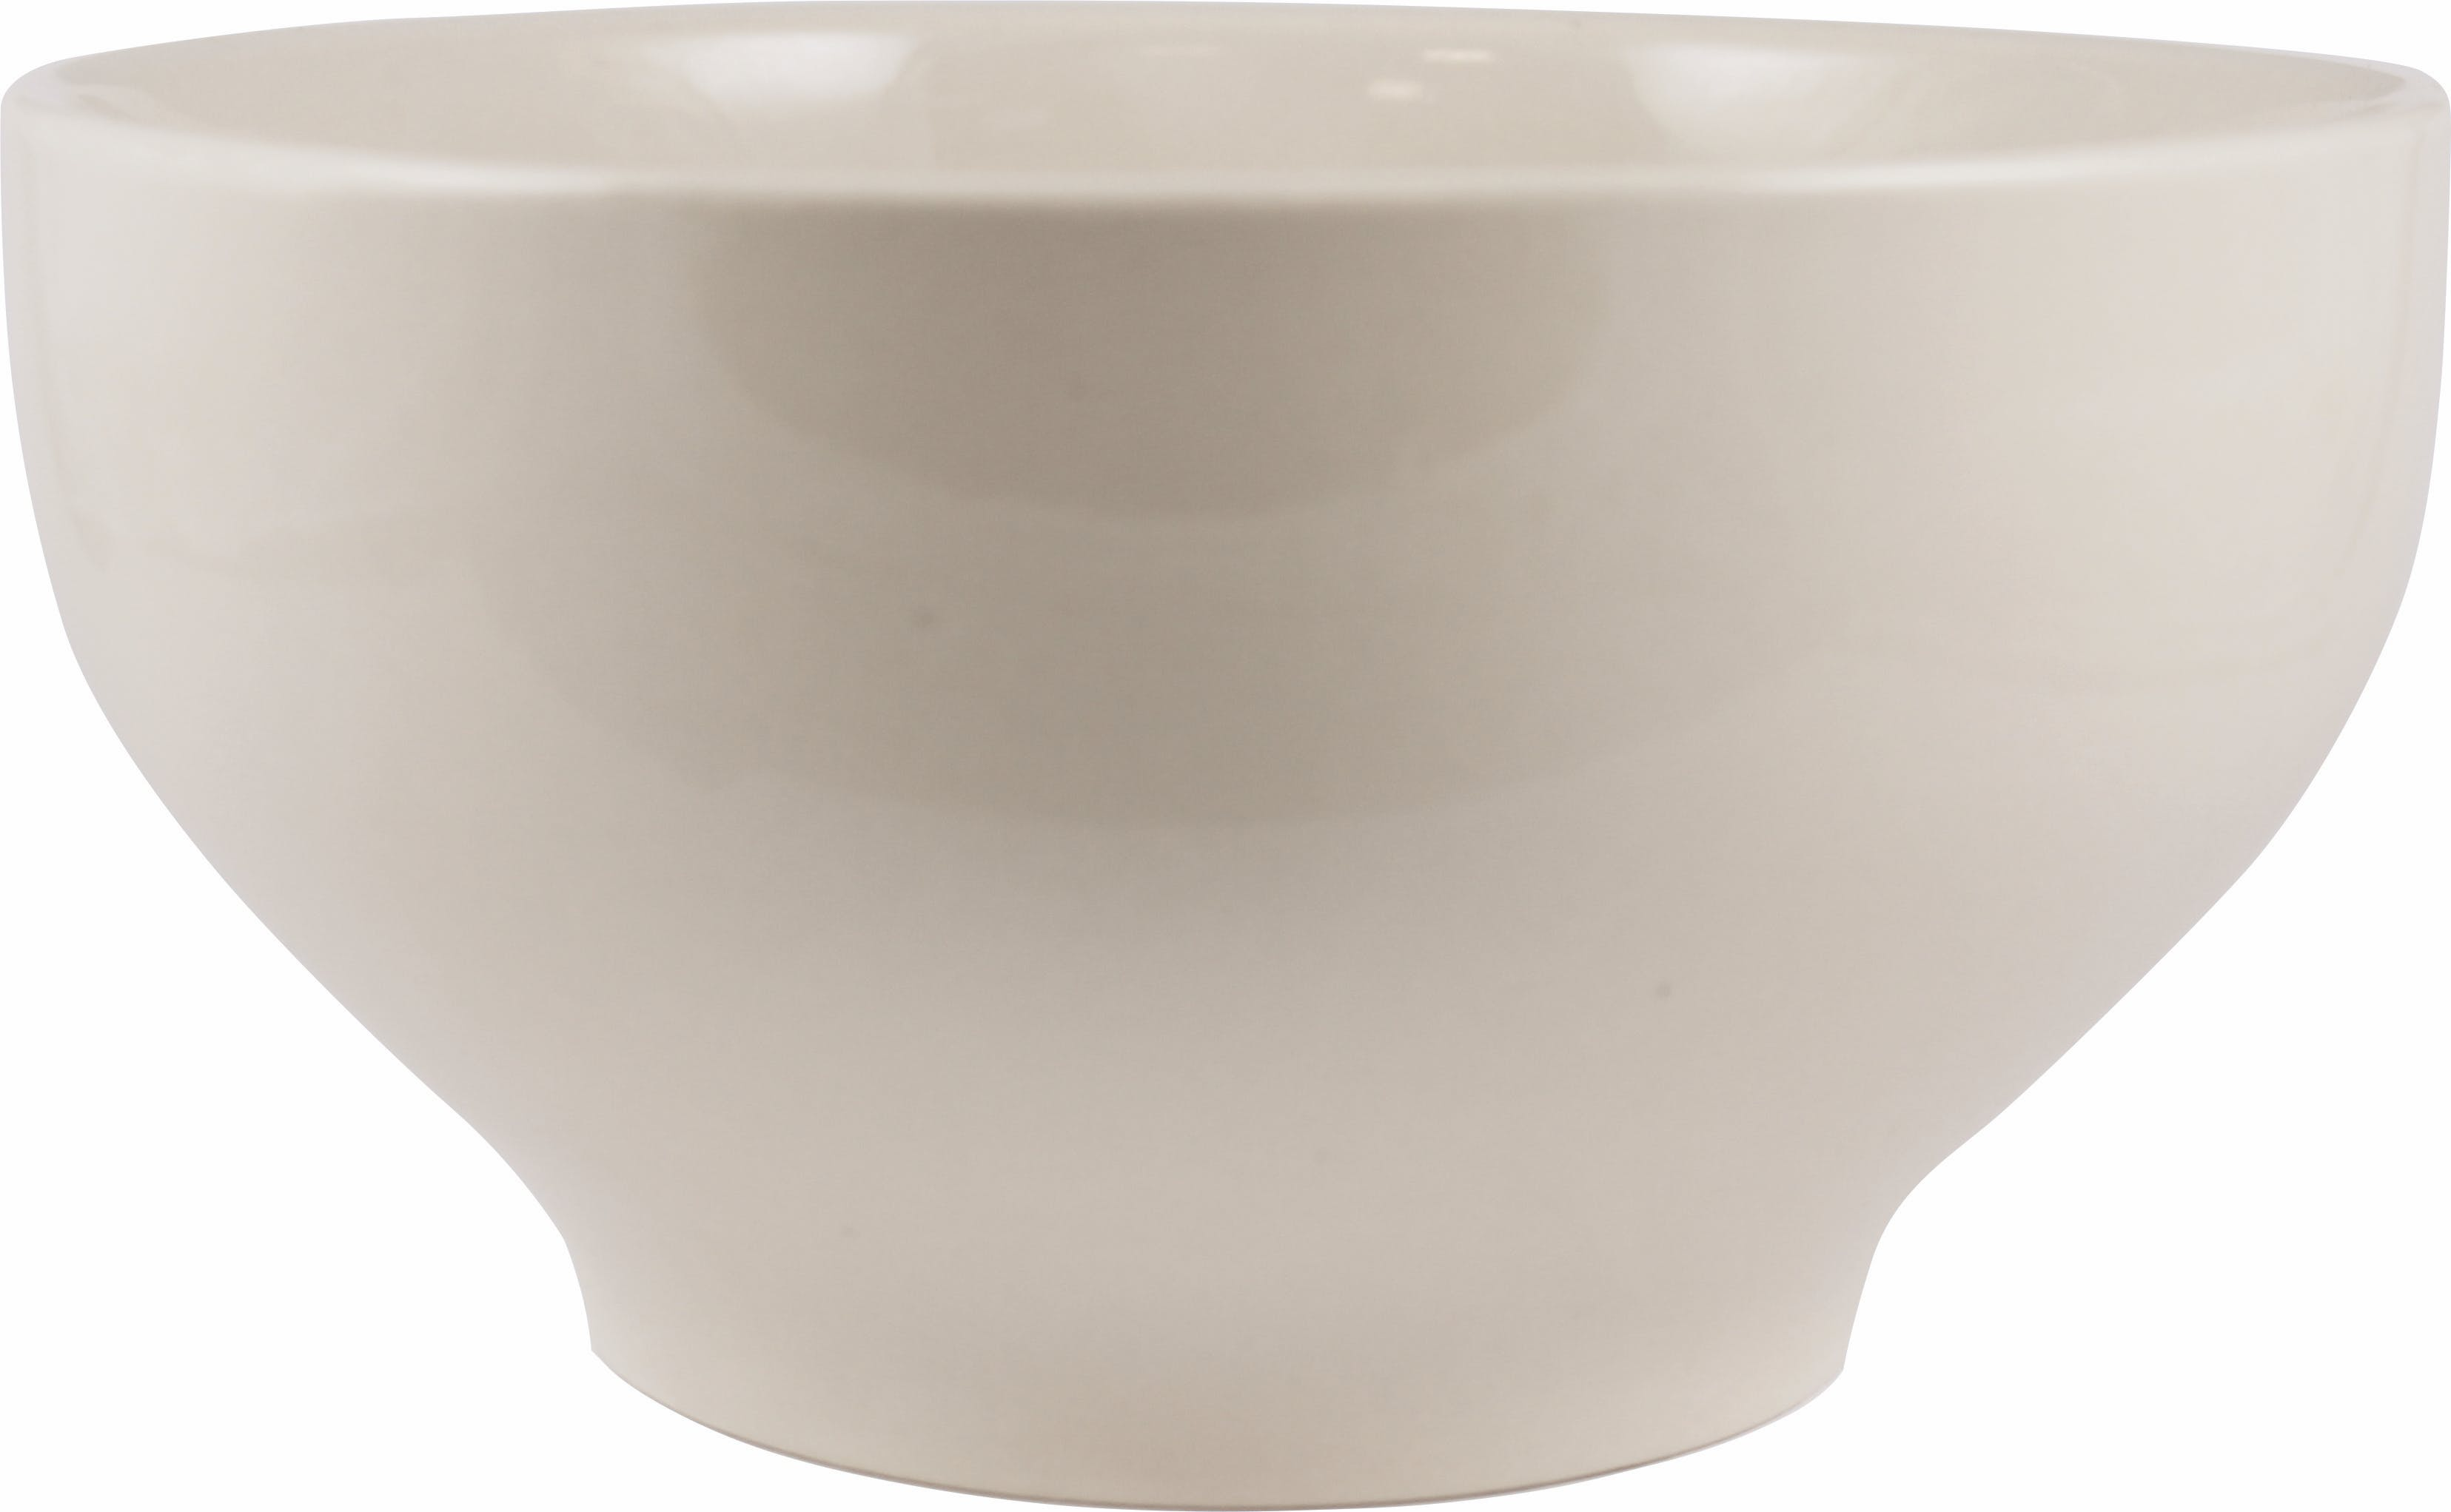 40 oz. American White Roma Round Footed Bowl Plate sold by Prestige Glassware